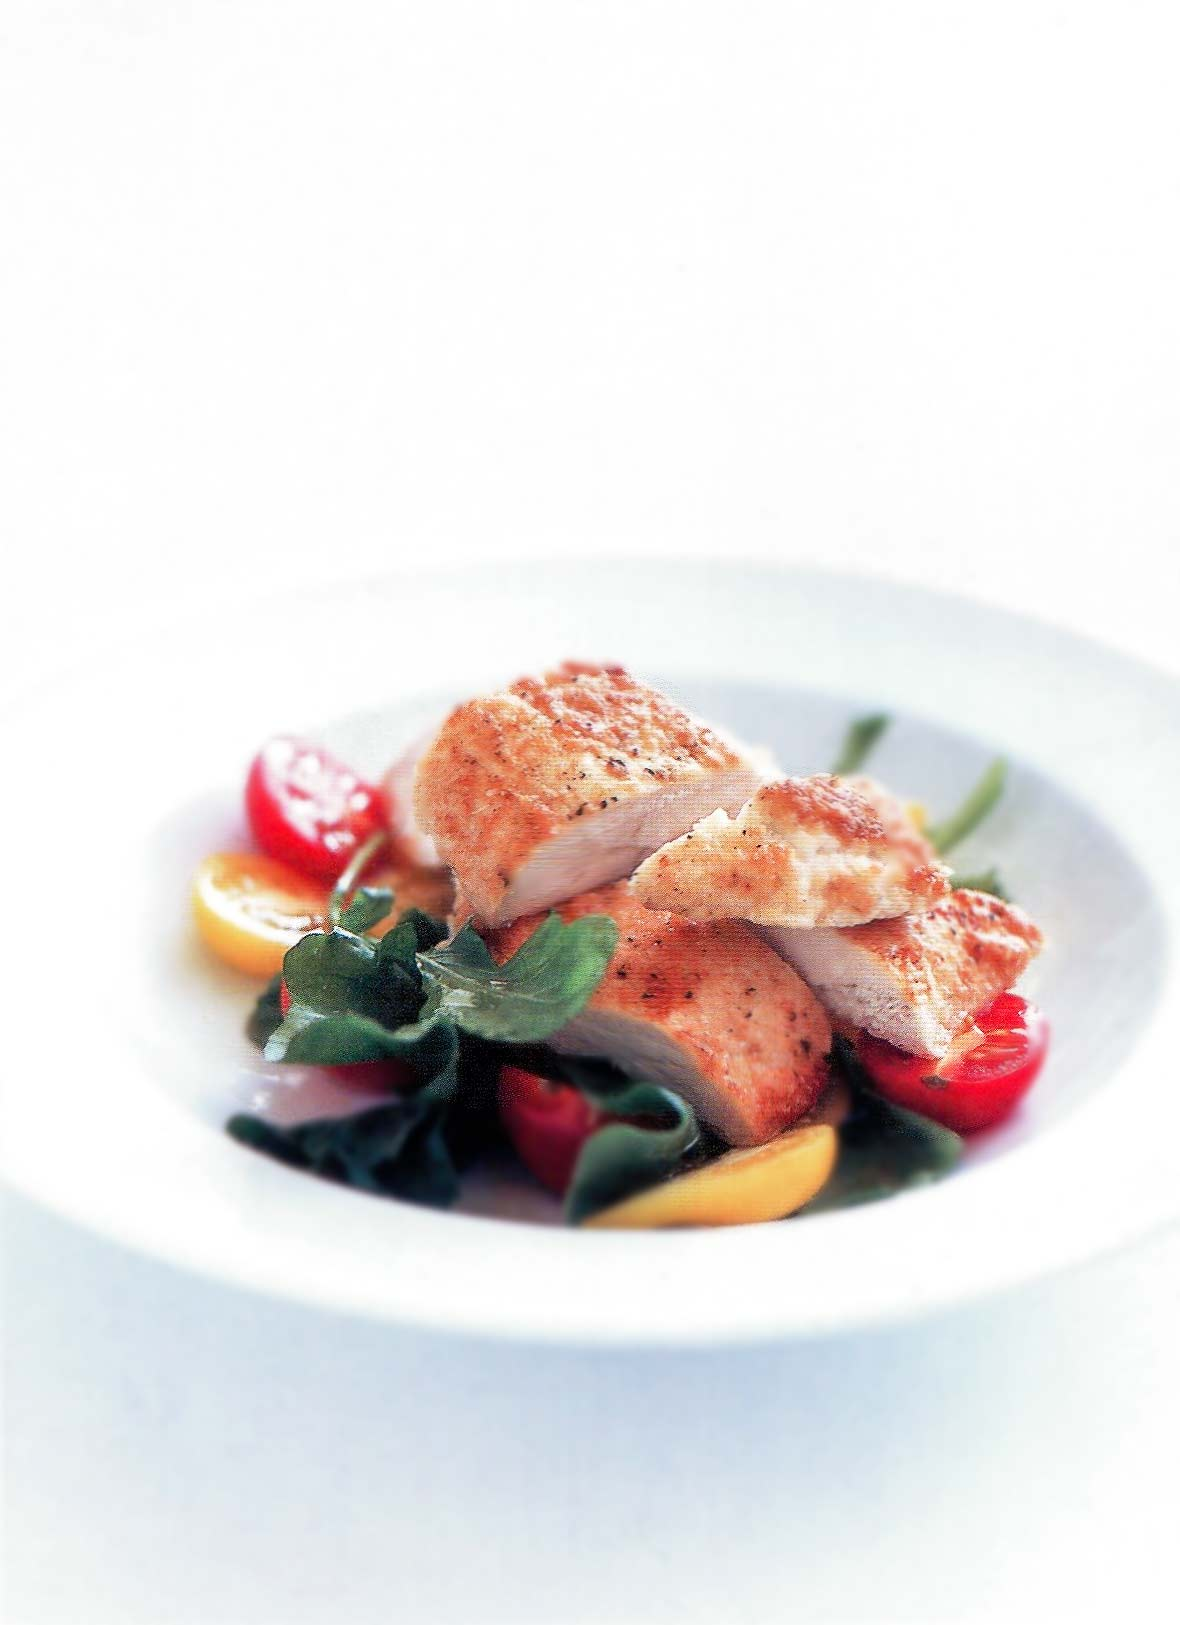 White bowl of sliced parmesan-crusted chicken, lettuce, and red and yellow cherry tomatoes